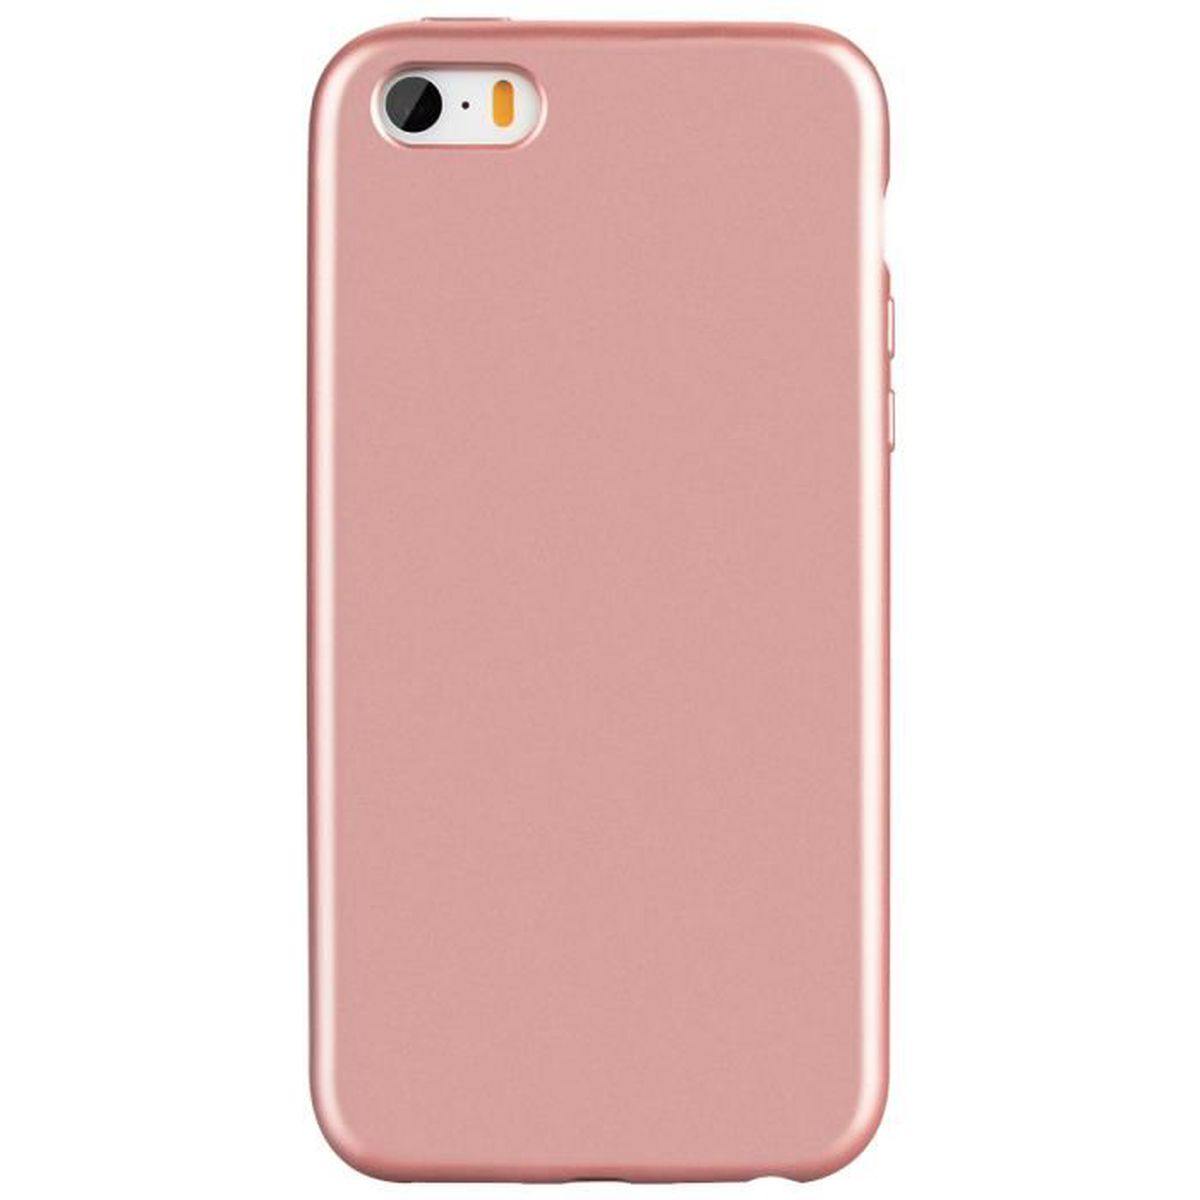 coque iphone 5s rose or gel silicone flexible doux